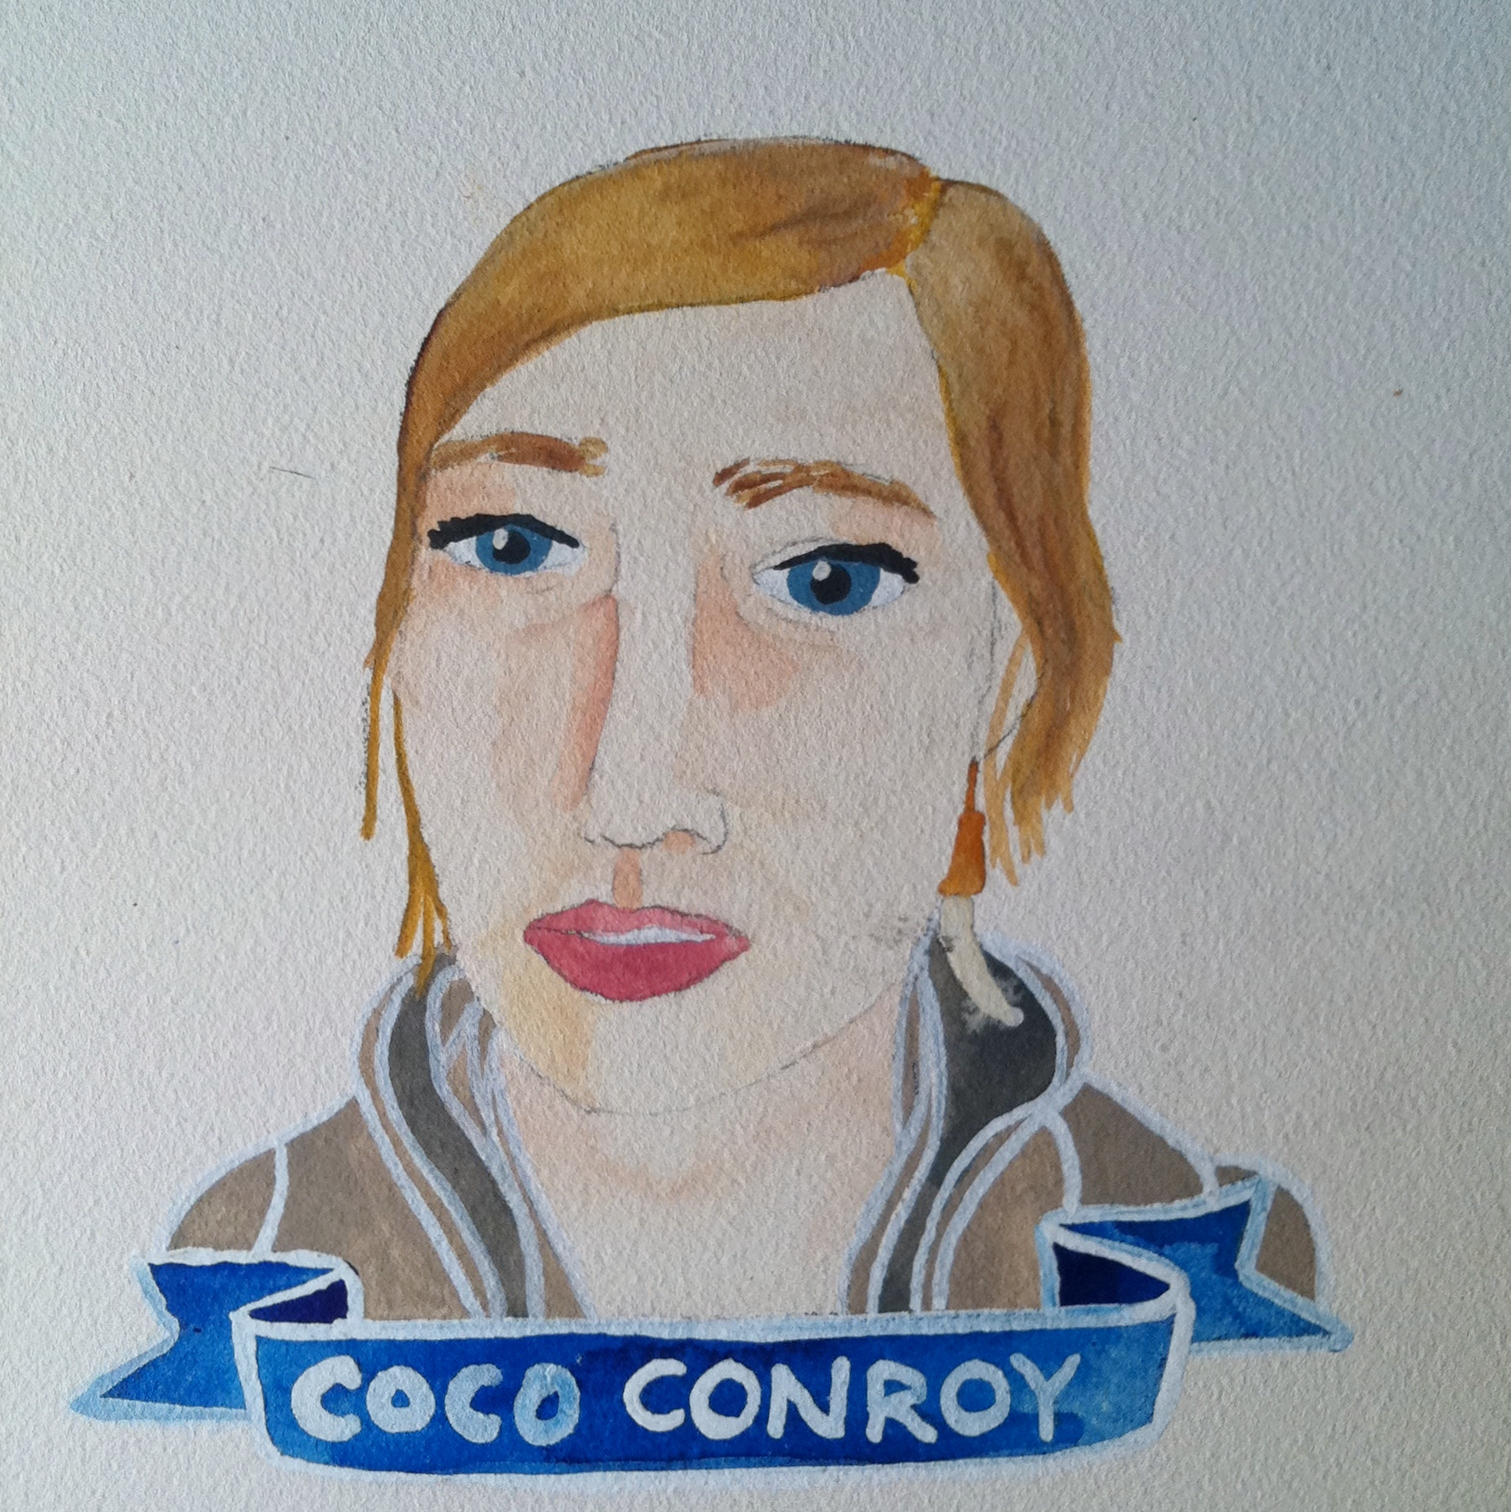 Talent Loves Company at Barbara Archer Gallery: 365 portraits by Lydia Walls - Coco Conroy